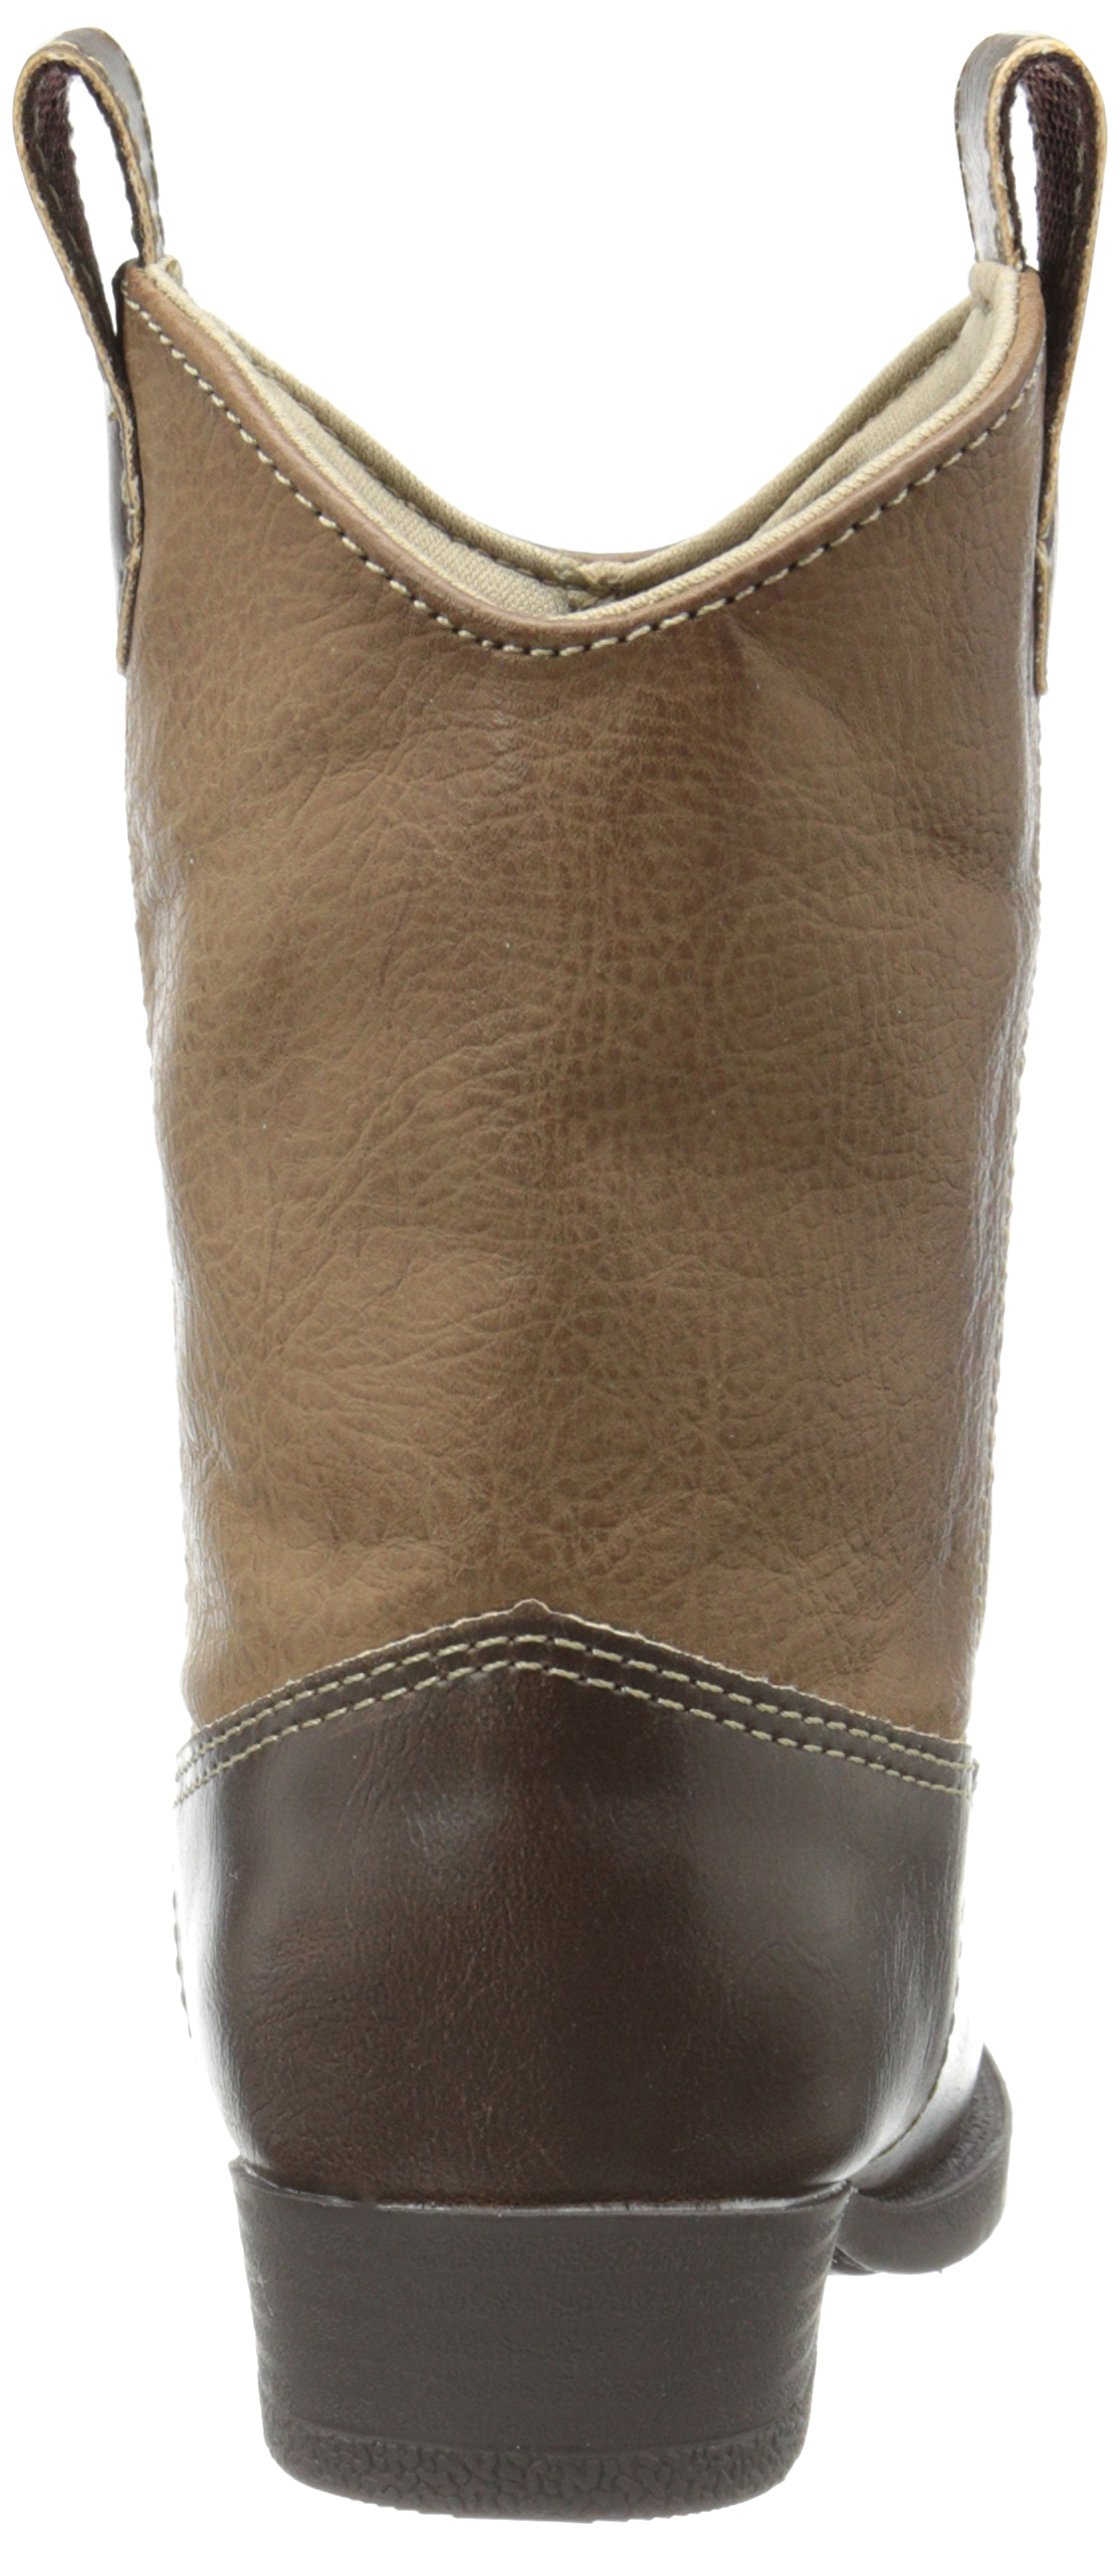 Baby Deer Western Boot (Little Kid), Brown, 11 M US Little Kid by Baby Deer (Image #2)